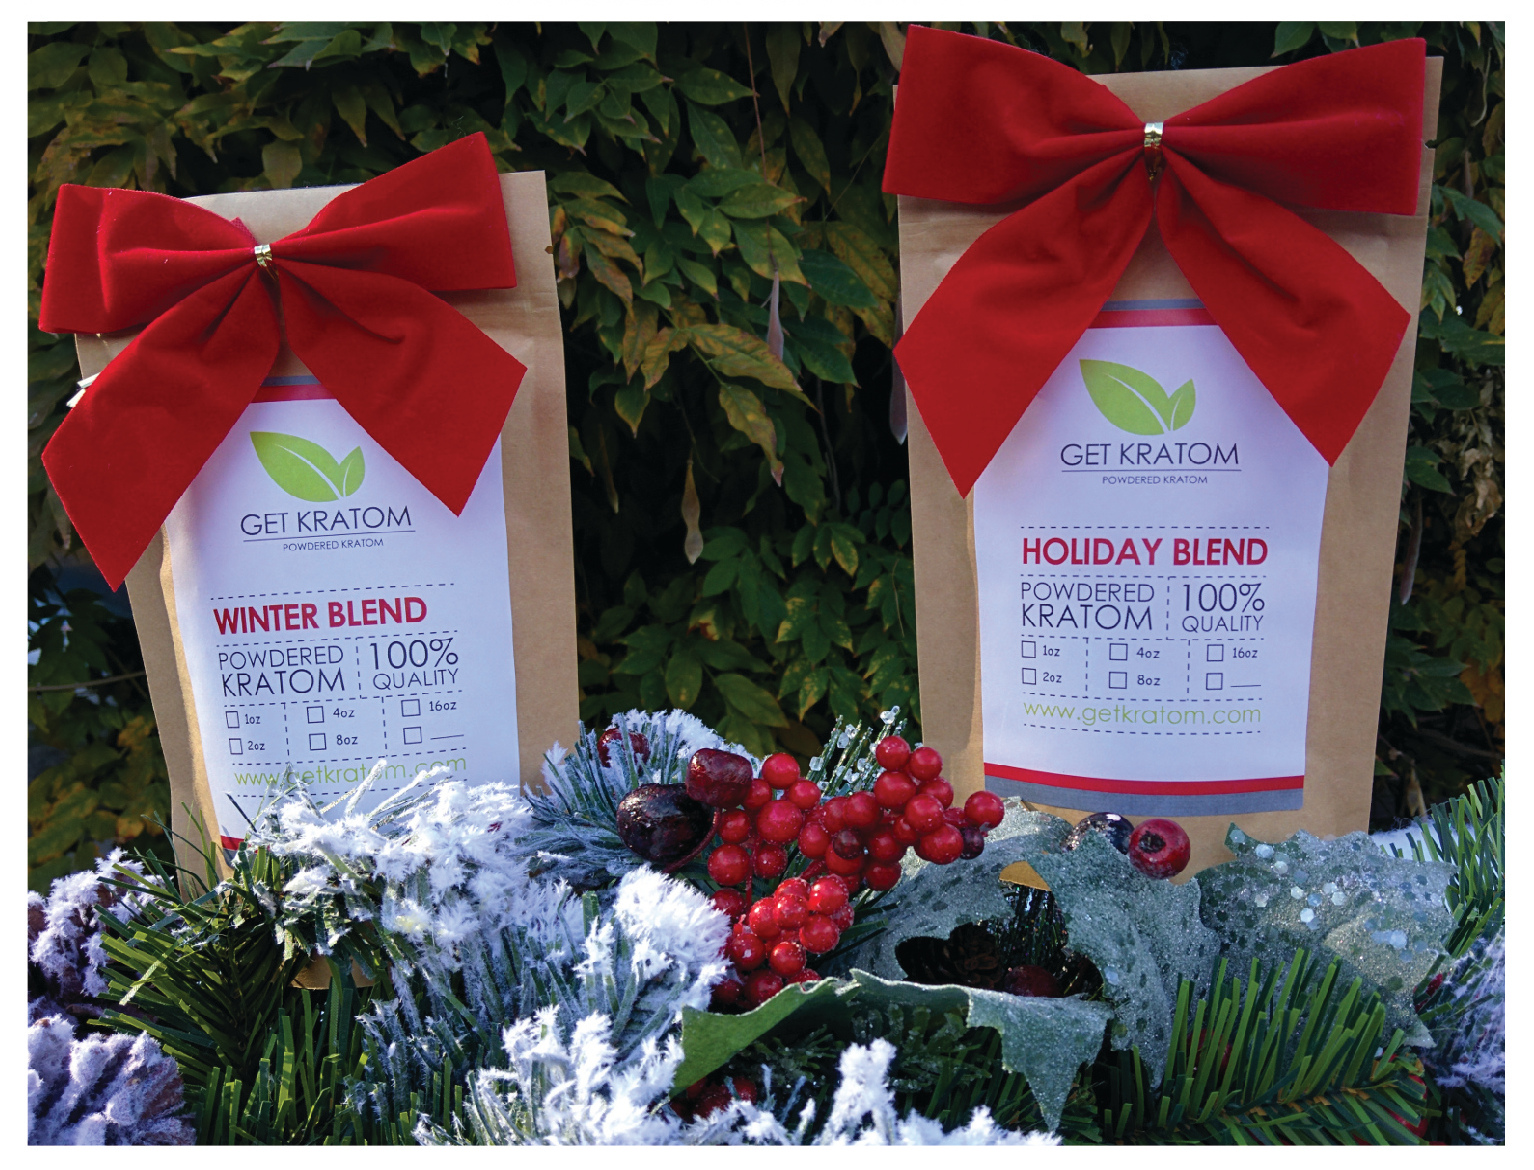 Winter Blend and Holiday Blend